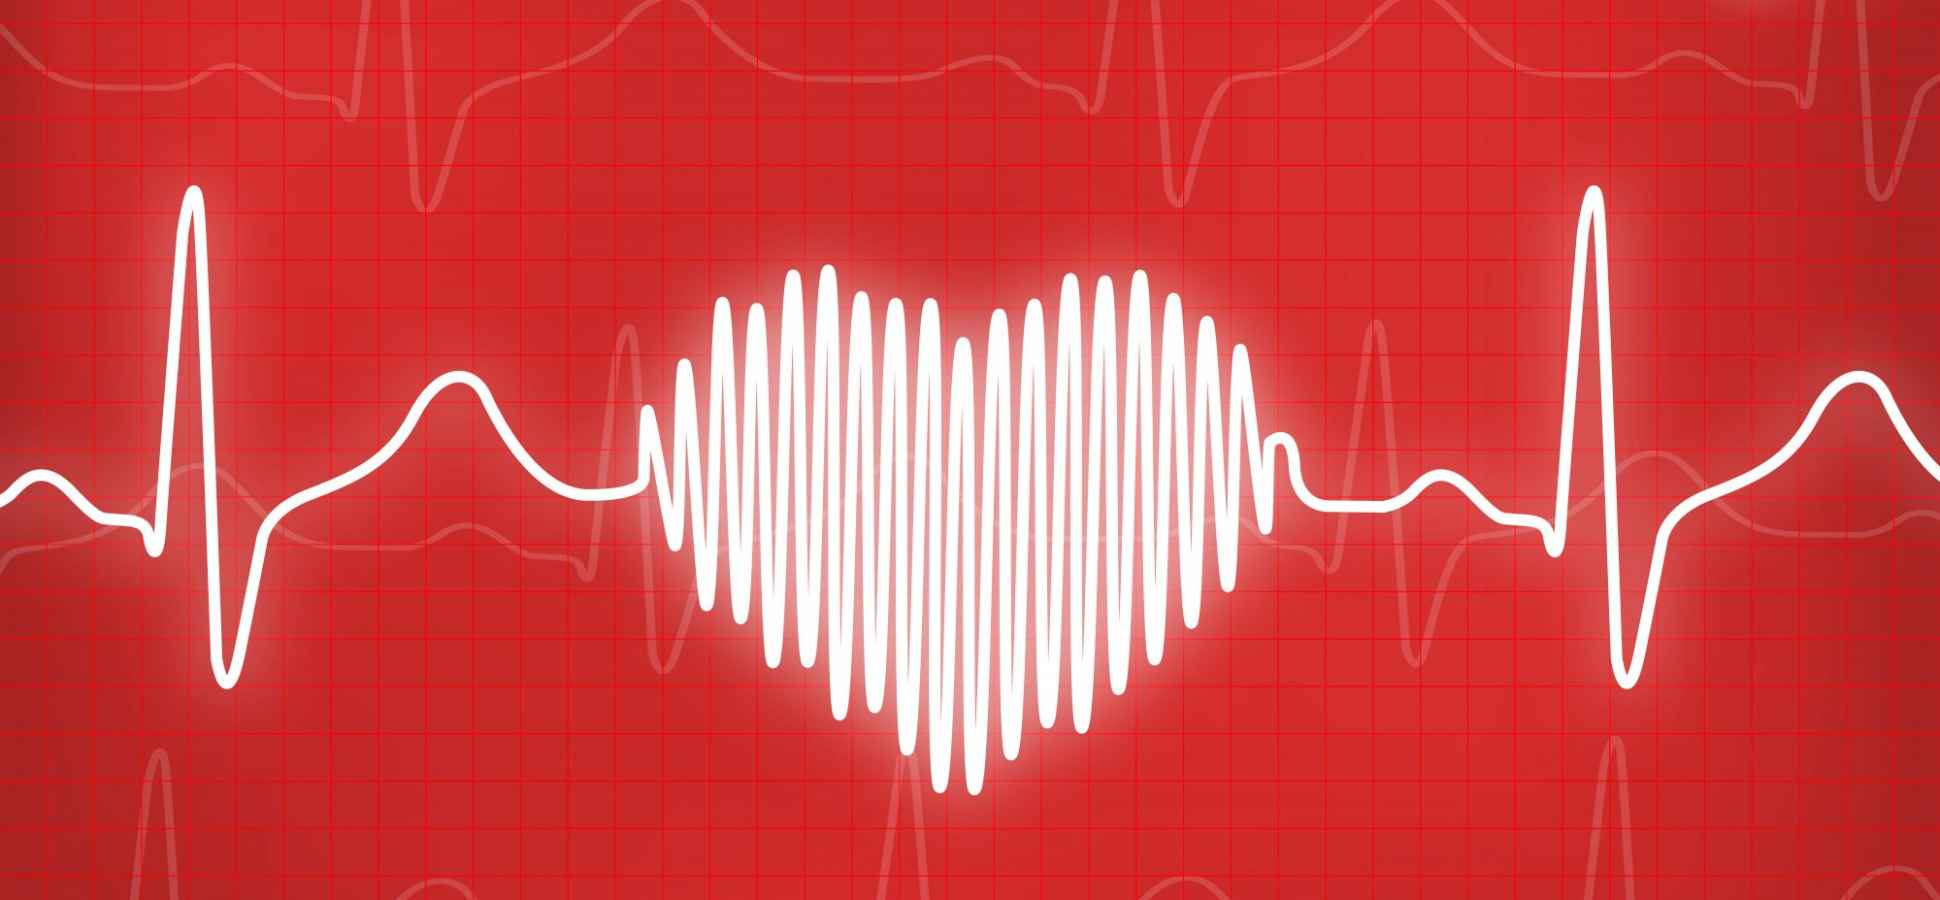 Work stress increases under-50s heart risk'